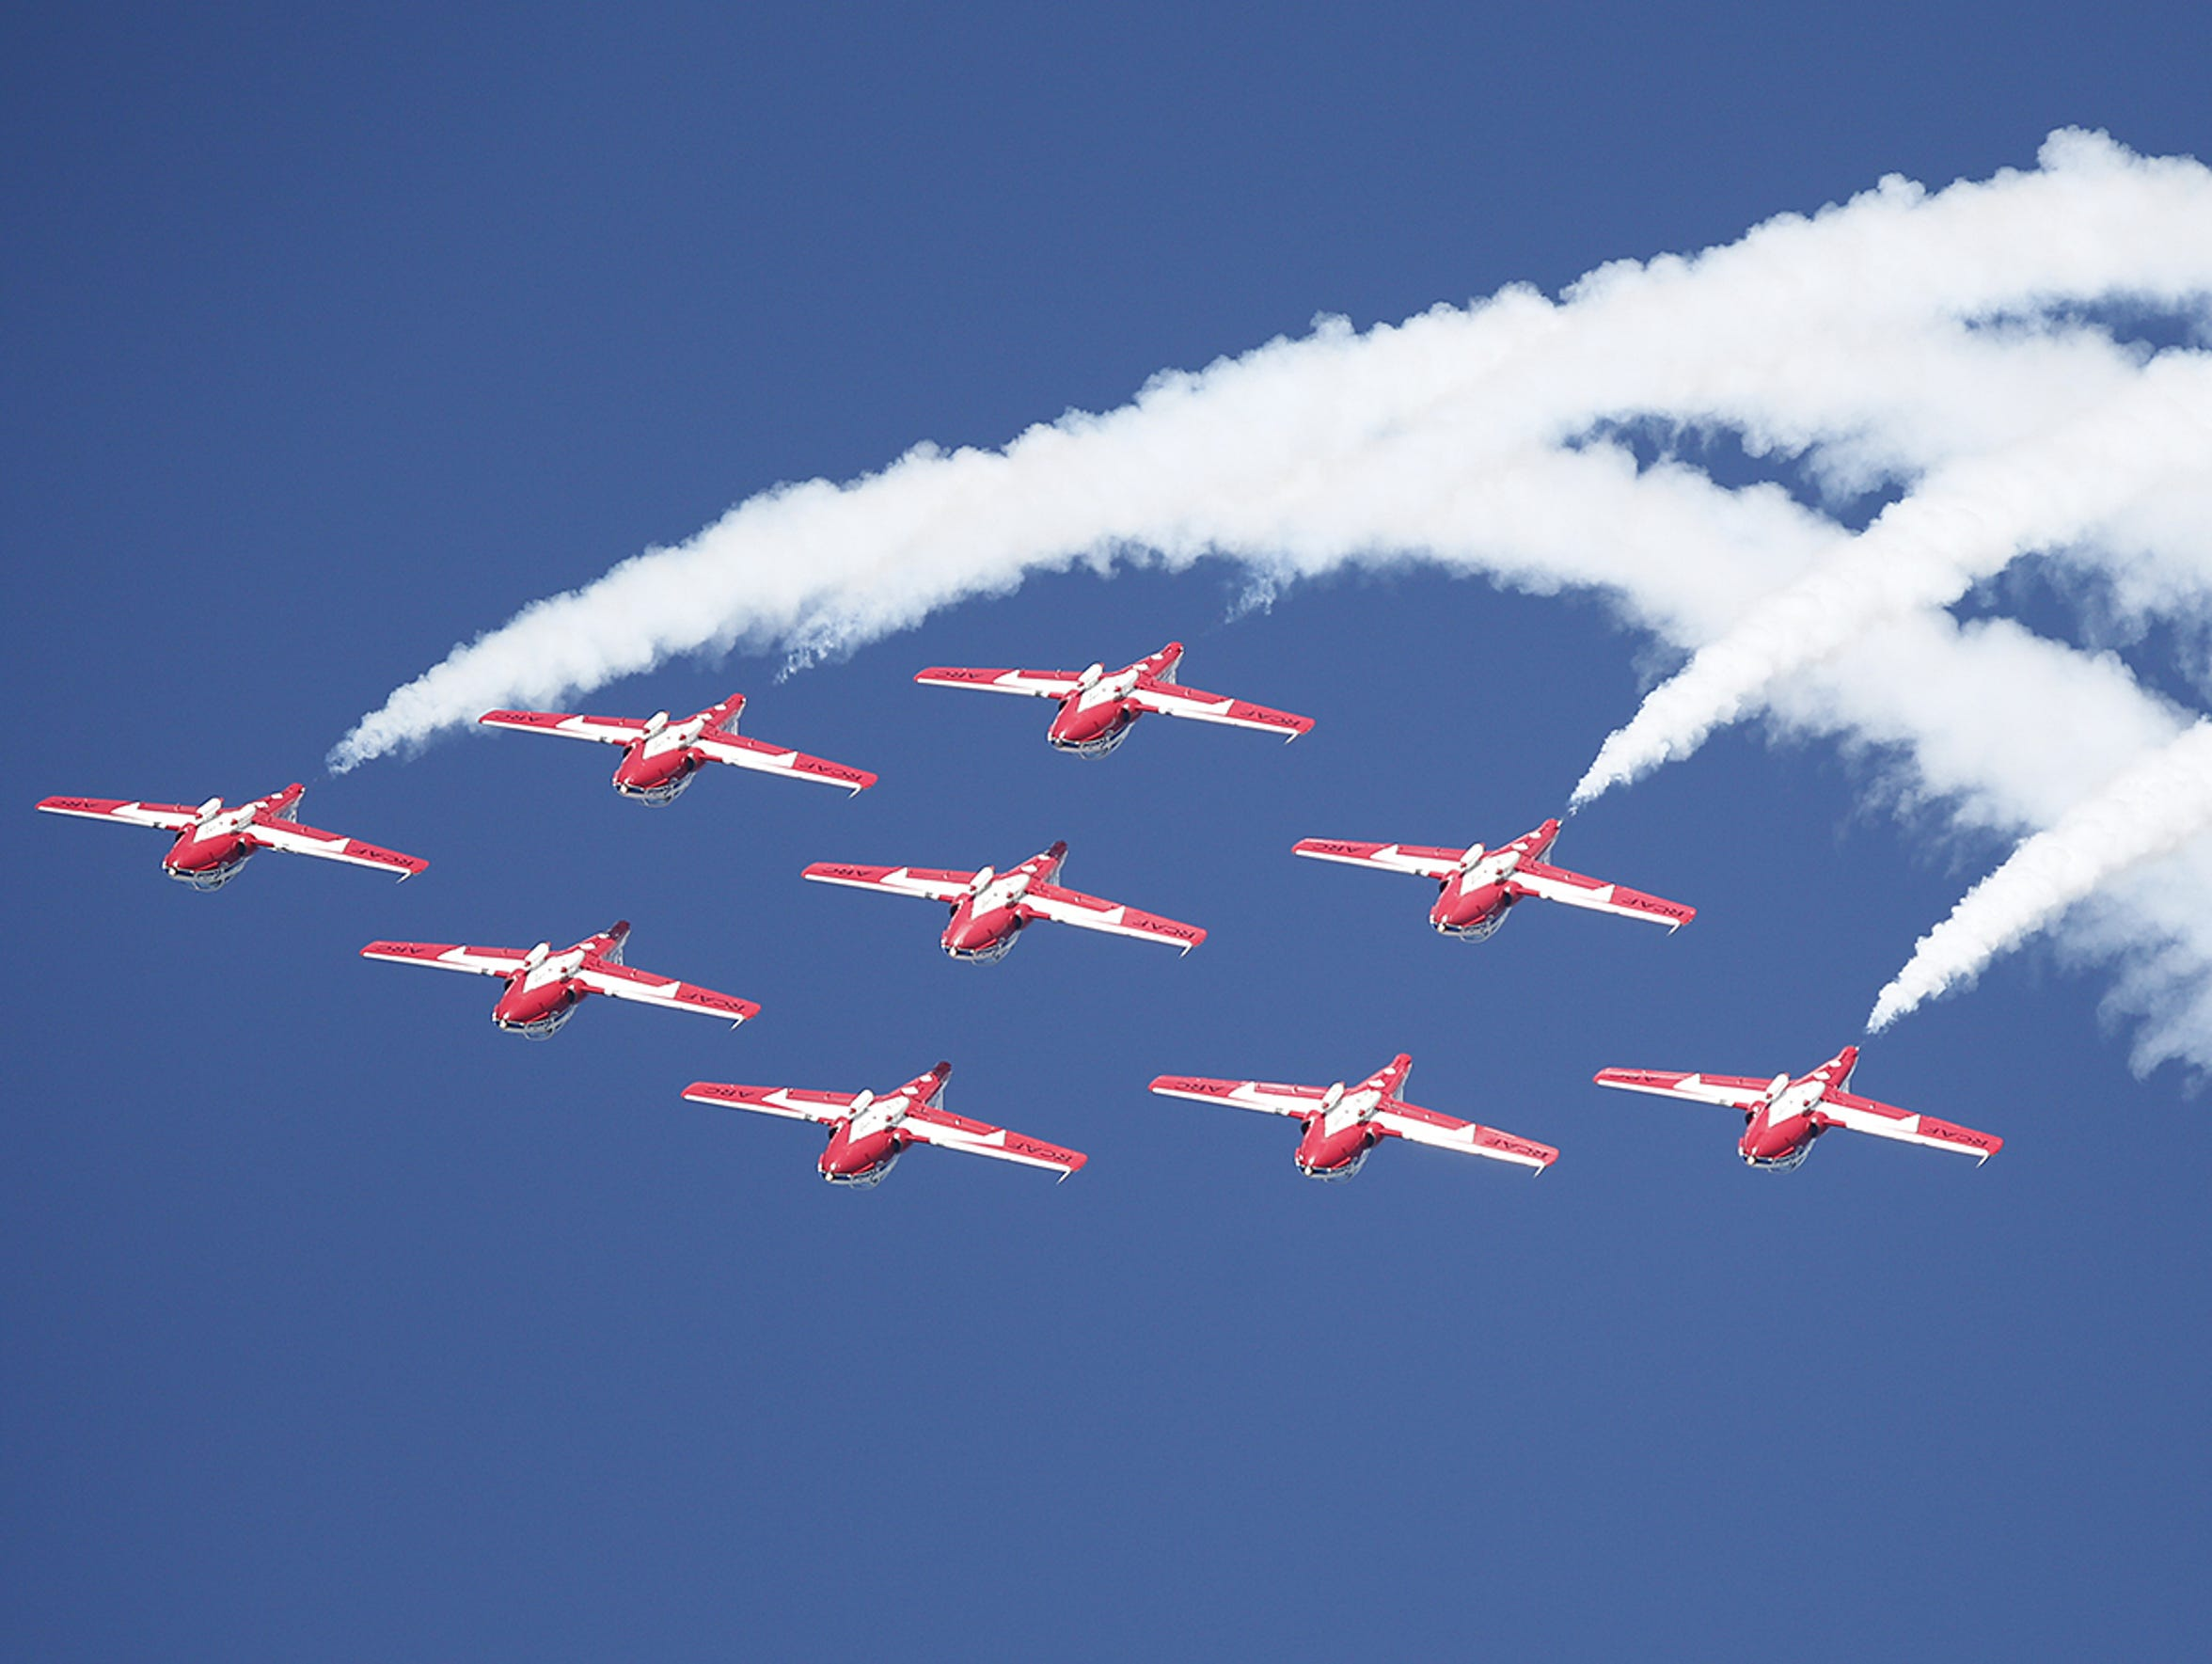 The skies above Oshkosh will be a colorful sight during